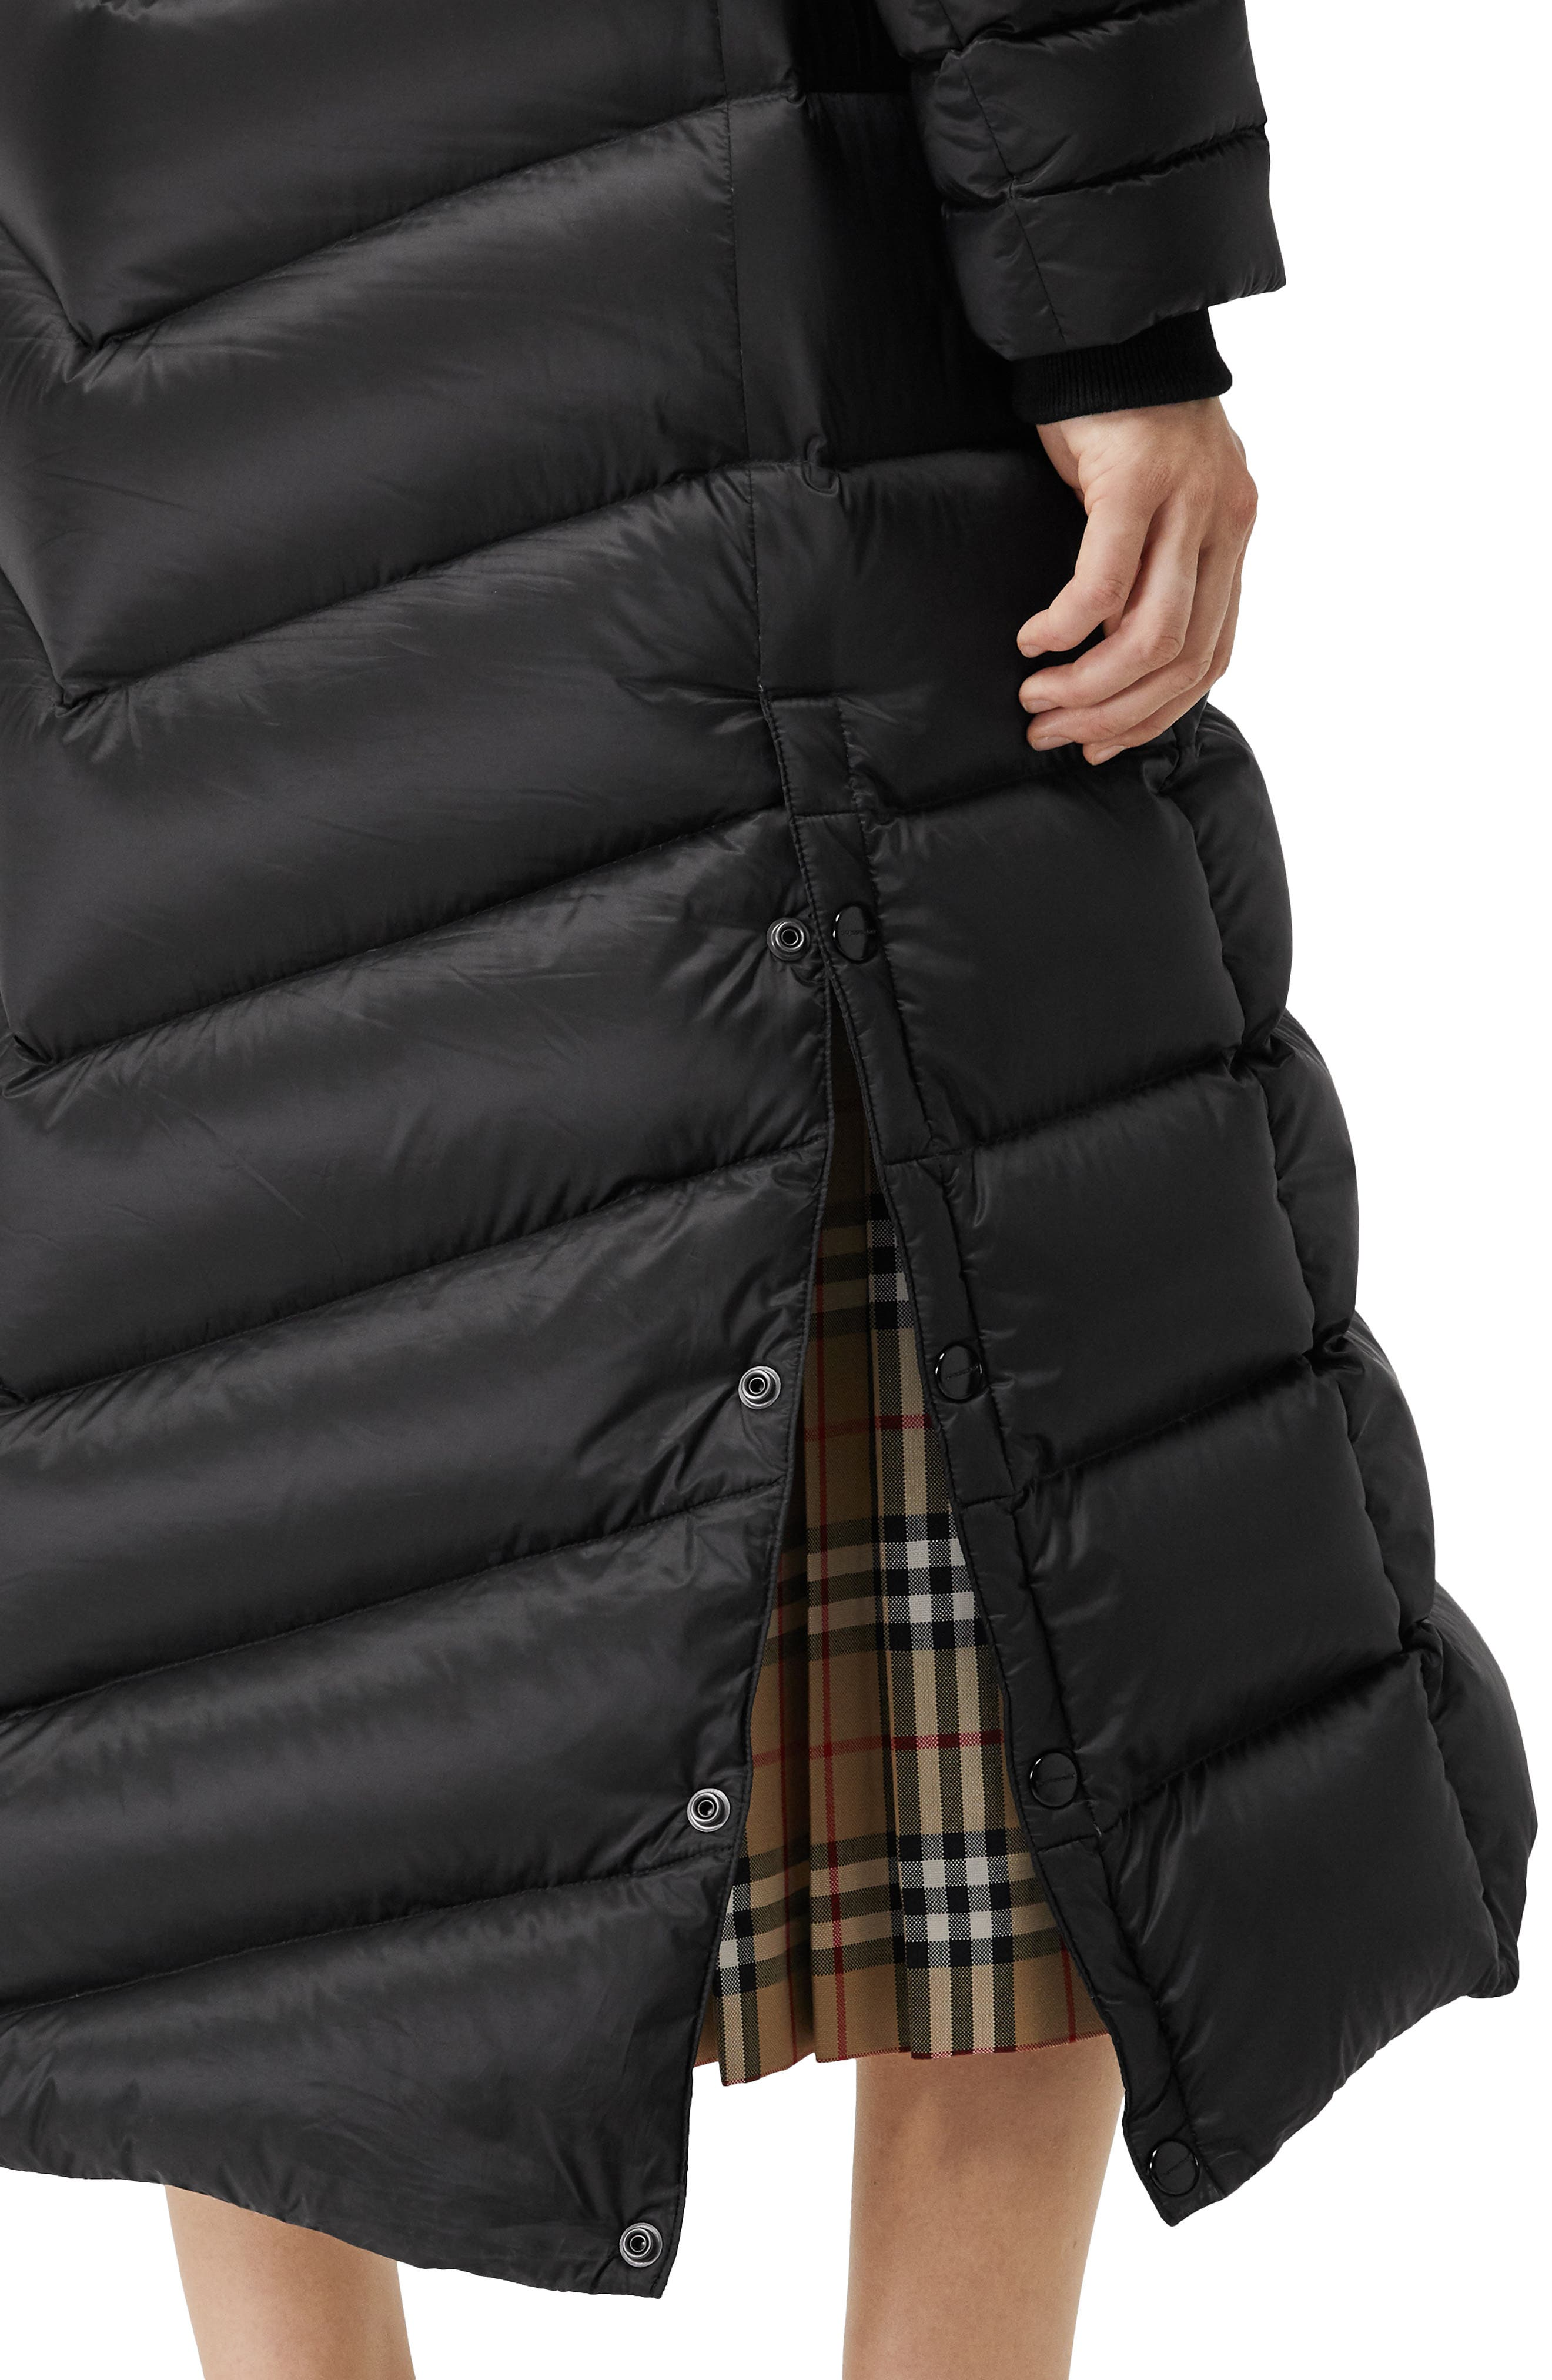 Kington Faux Fur Trim Long Down Coat,                             Alternate thumbnail 3, color,                             BLACK